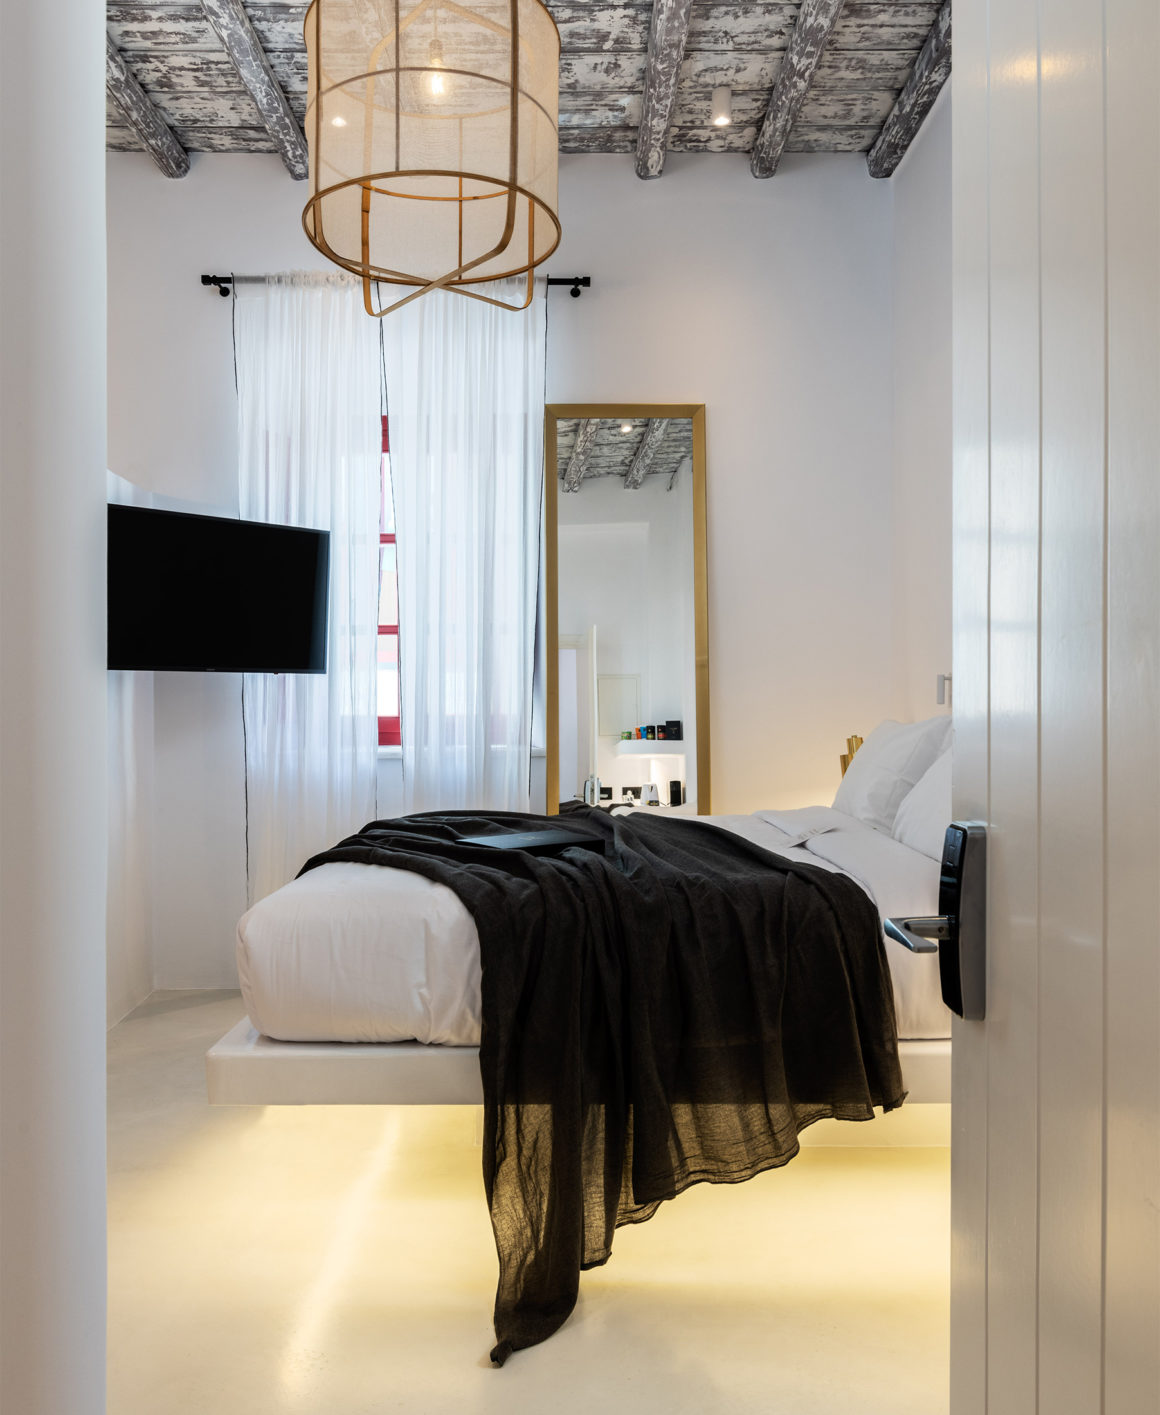 The TownHouse Mykonos Superior Chic Bed